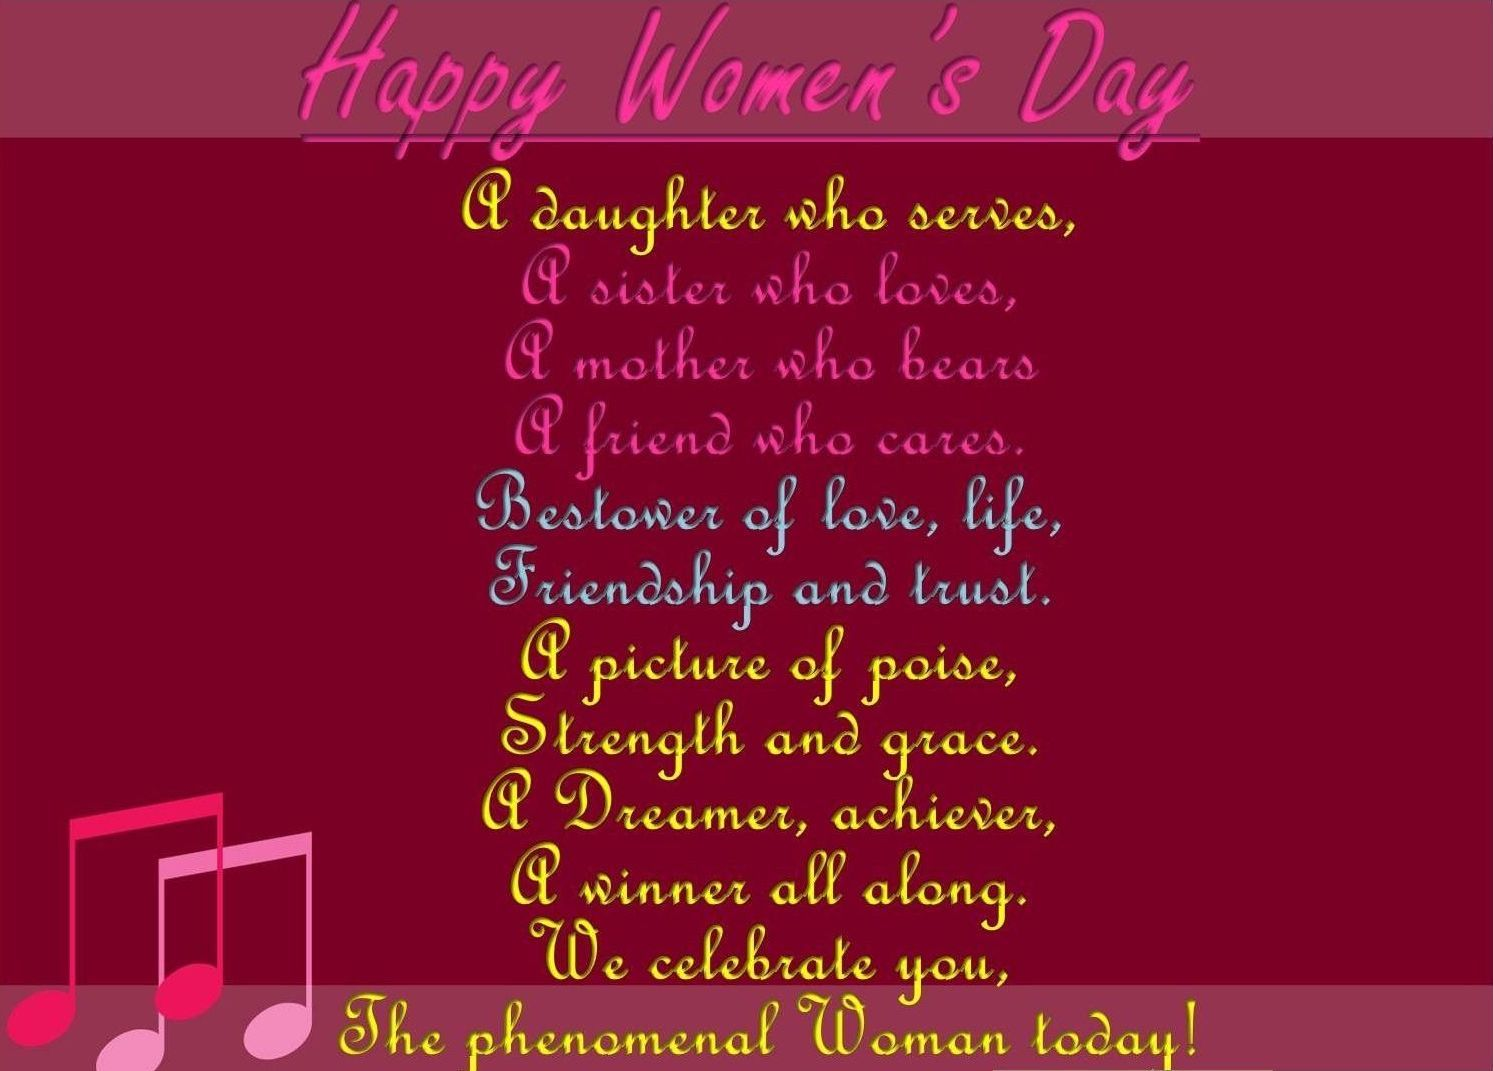 Women's Day Quotes Mesmerizing Happy Women's Day  2015 Quotes And Feminism Inspiration